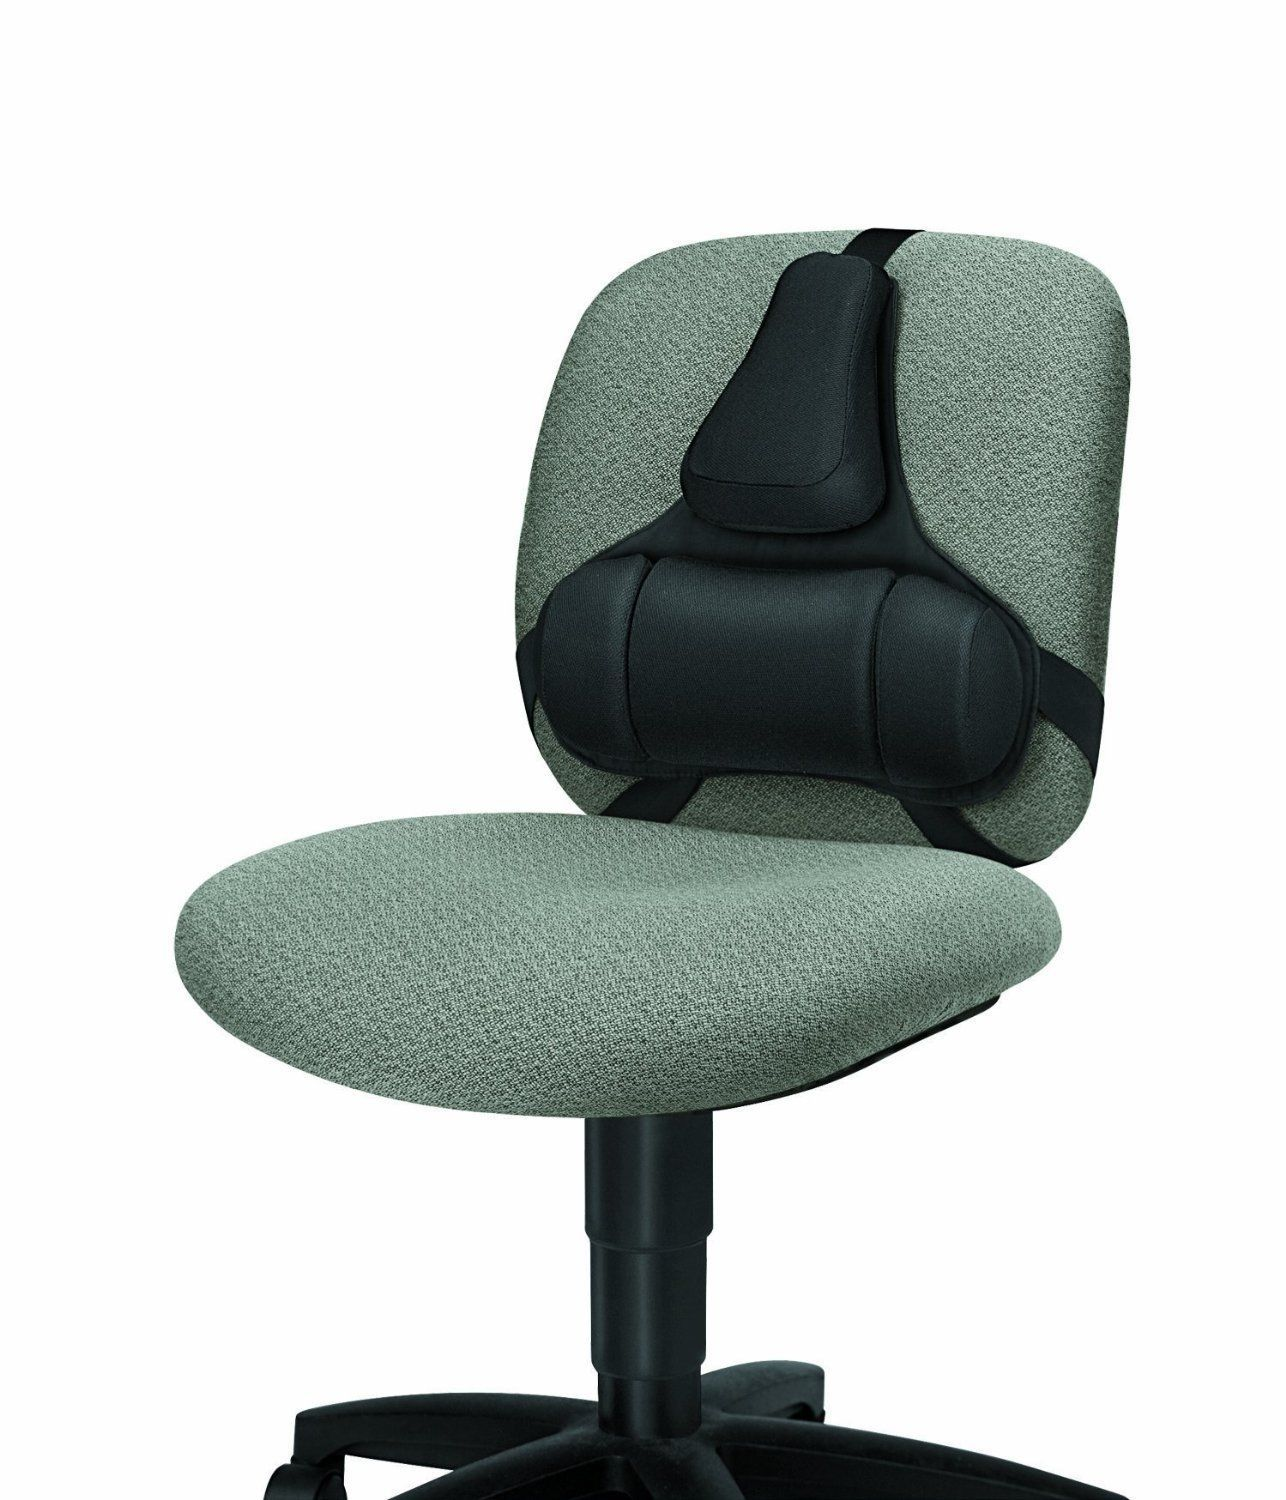 strap on chair back support desk ergonomic lumbar office seat comfort pad memory chairs. Black Bedroom Furniture Sets. Home Design Ideas